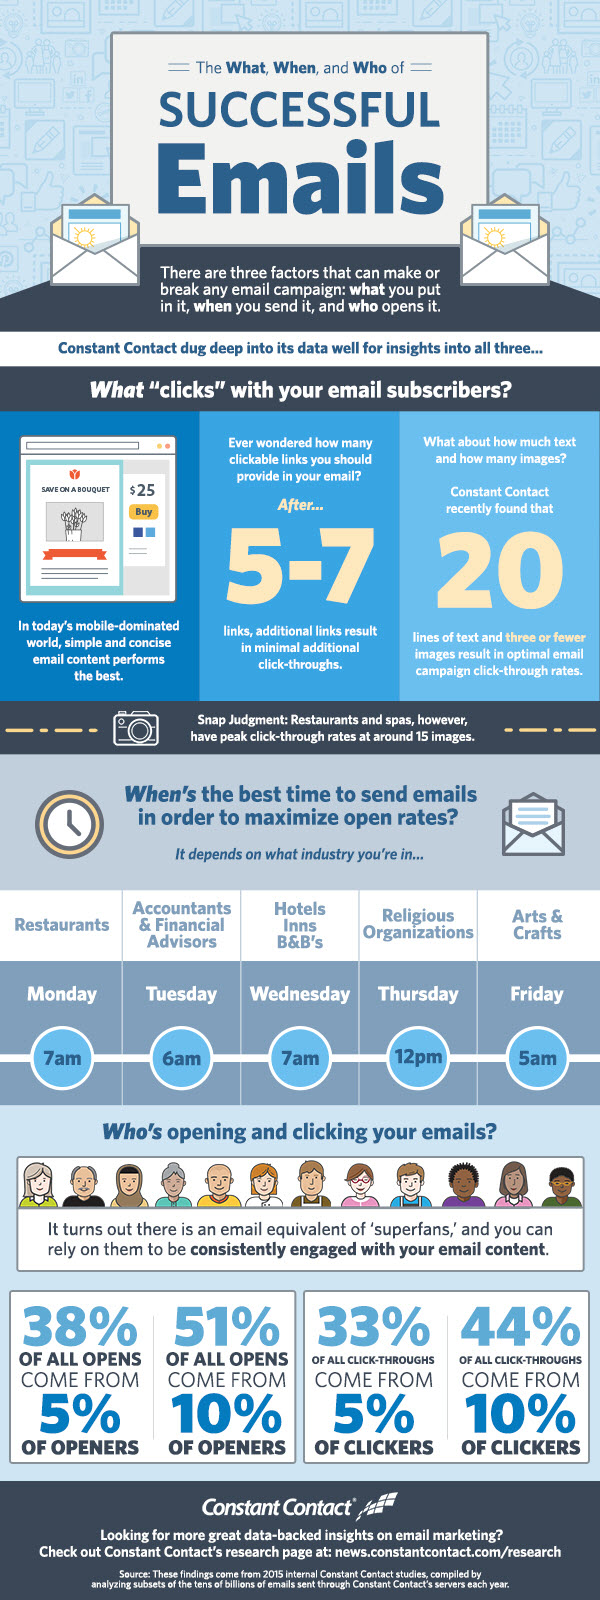 Elements Of Successful Email Campaigns [INFOGRAPHIC]